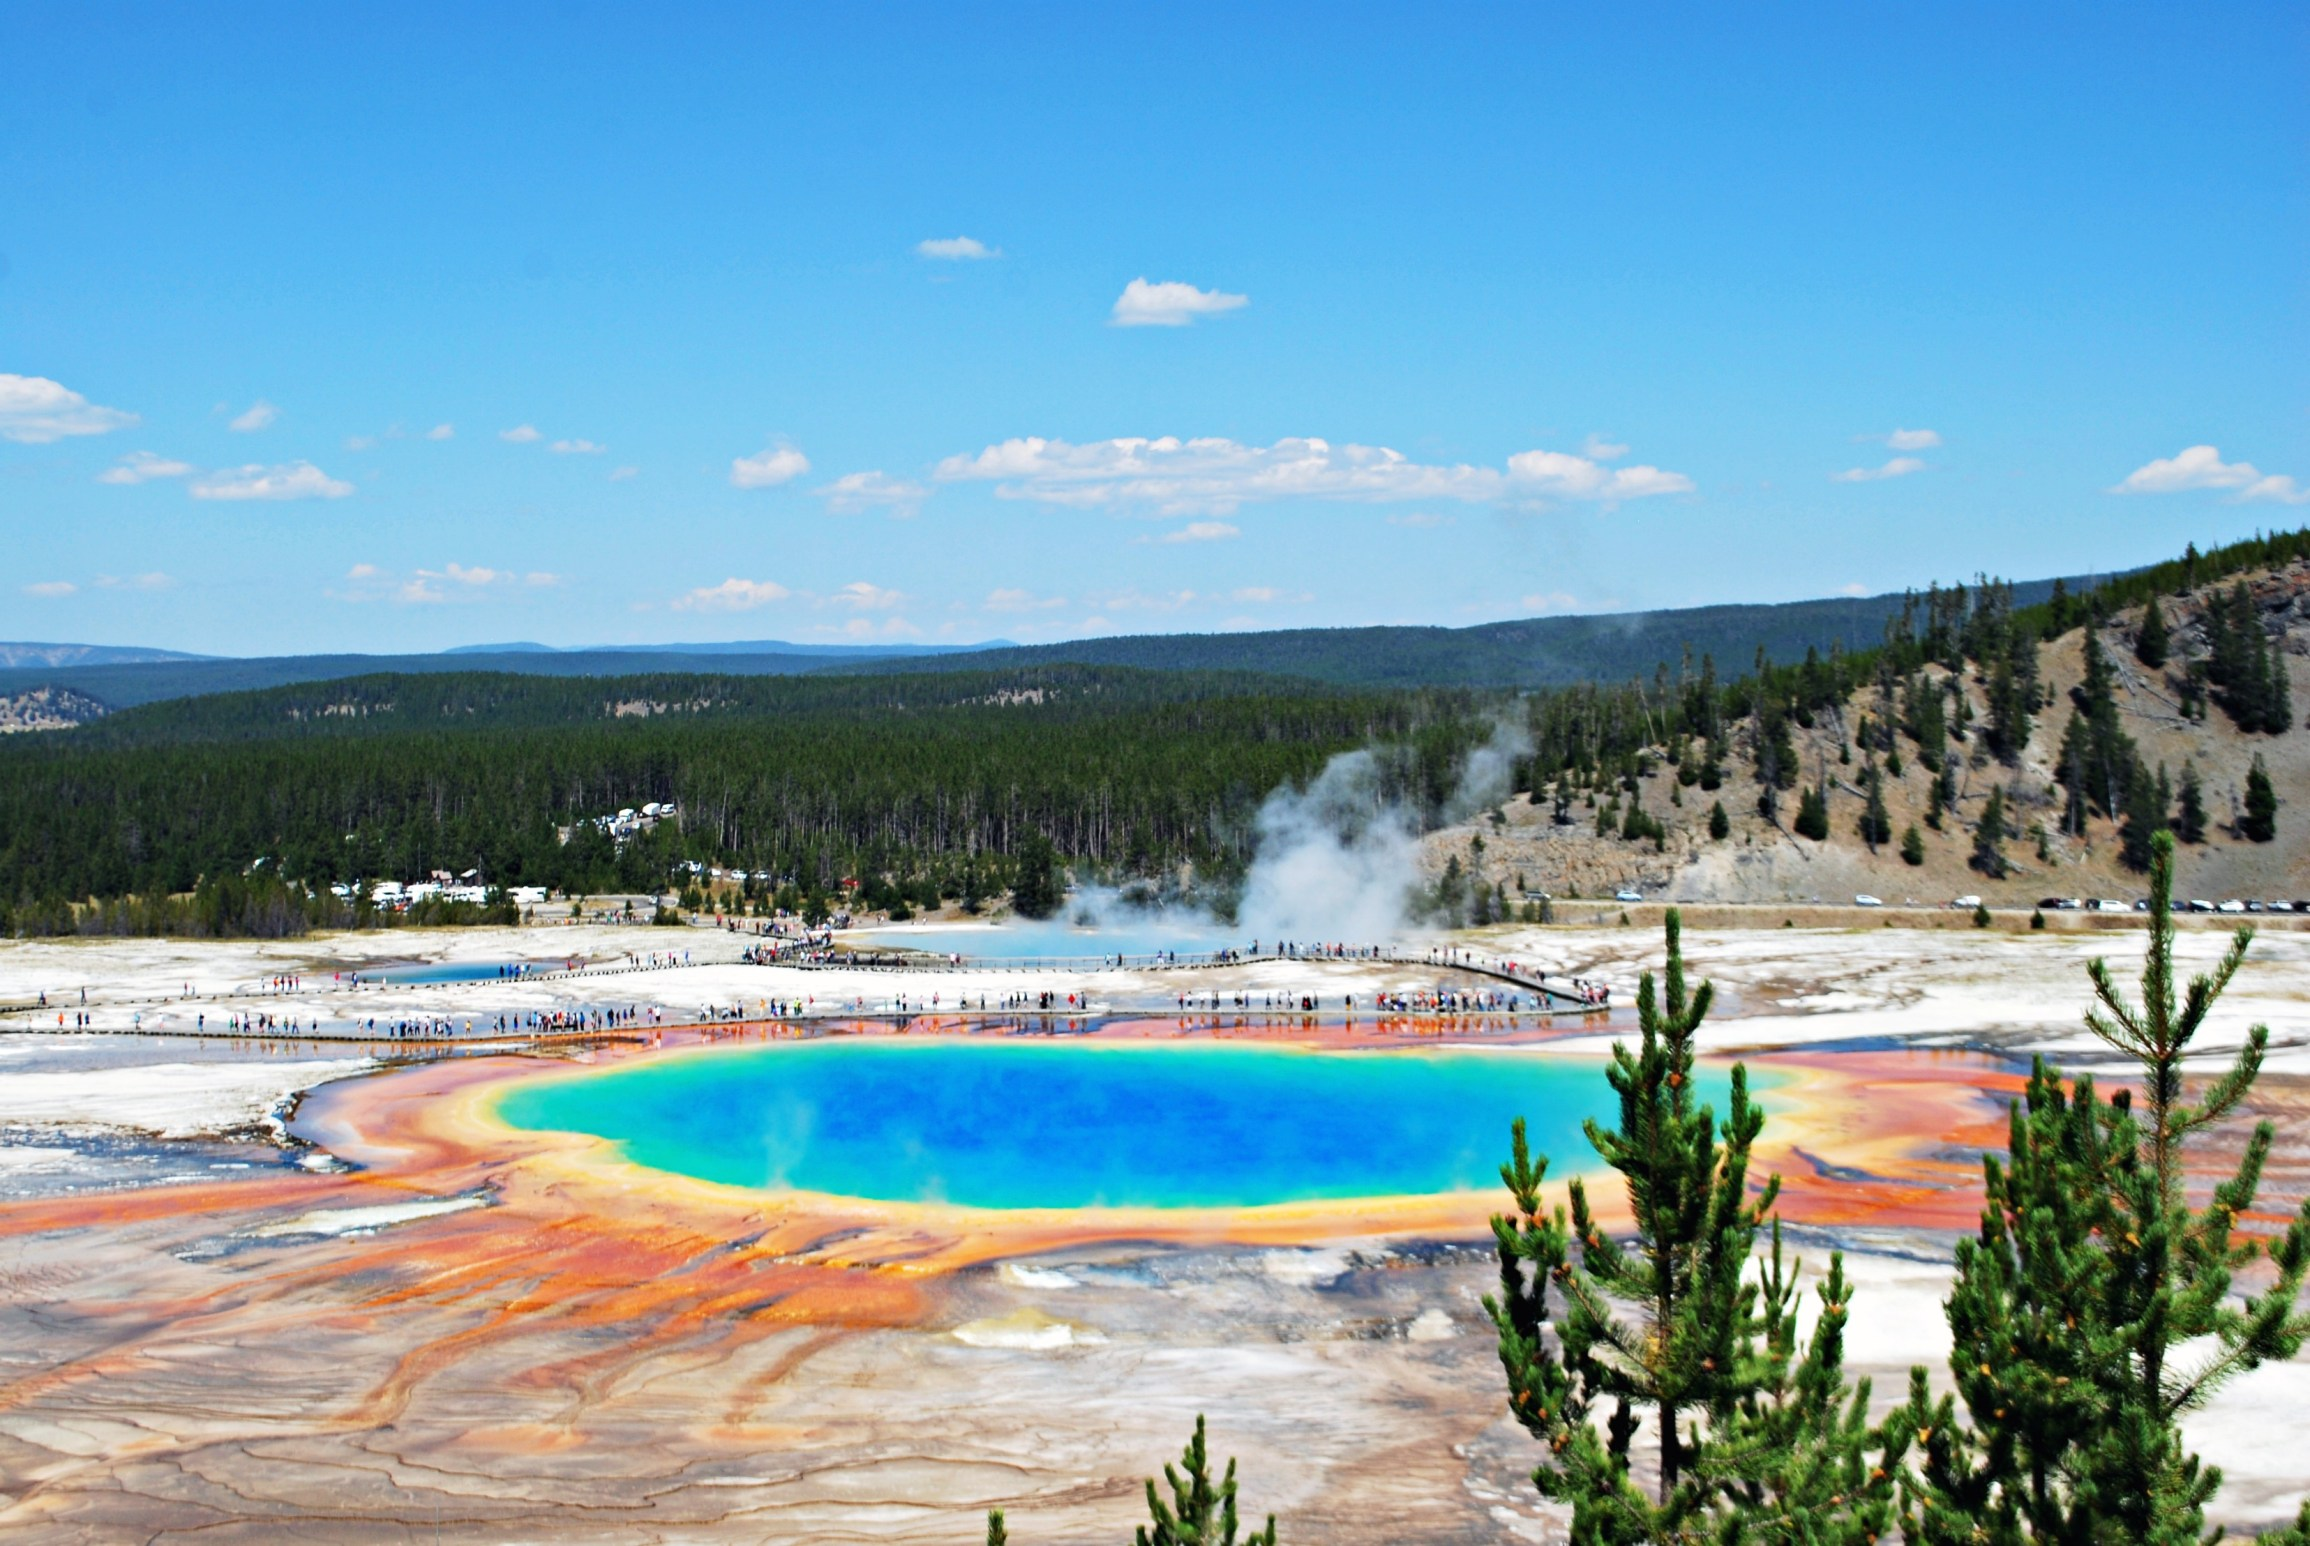 This Yellowstone National Park vacation itinerary creates the ultimate bucket list for your next adventure! Learn the best things to do in Yellowstone including visit Mammoth Hot Springs, the Grand Canyon of Yellowstone, and Old Faithful. Learn what lodges and camping sites that are perfect for your road trip during summer, spring, or fall, and the best packing tips, hiking destinations, and travel hacks you will need. Read now to learn about your next USA travel adventure! #yellowstone